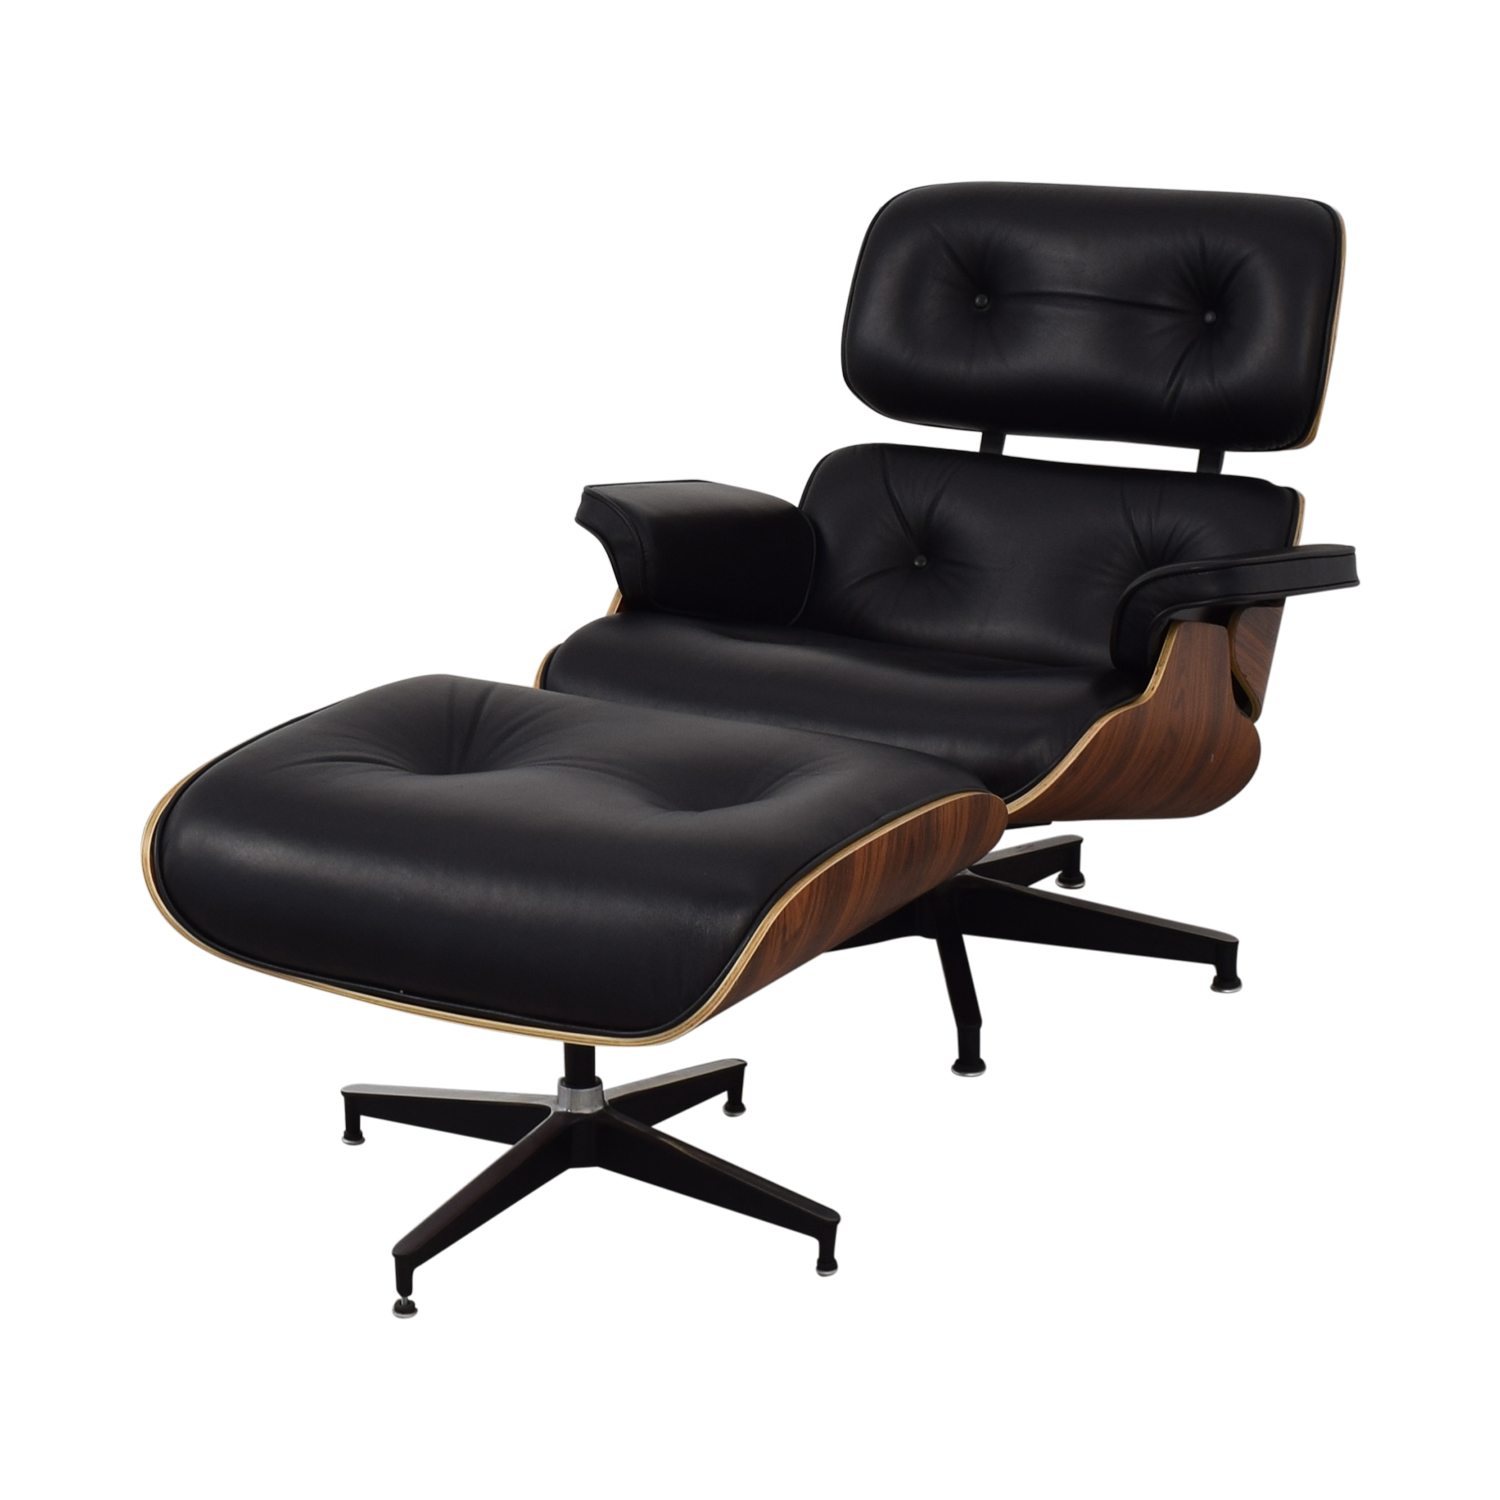 Brilliant 65 Off Manhattan Home Design Manhattan Home Design Eames Style Classic Lounge Chair And Ottoman Chairs Pdpeps Interior Chair Design Pdpepsorg